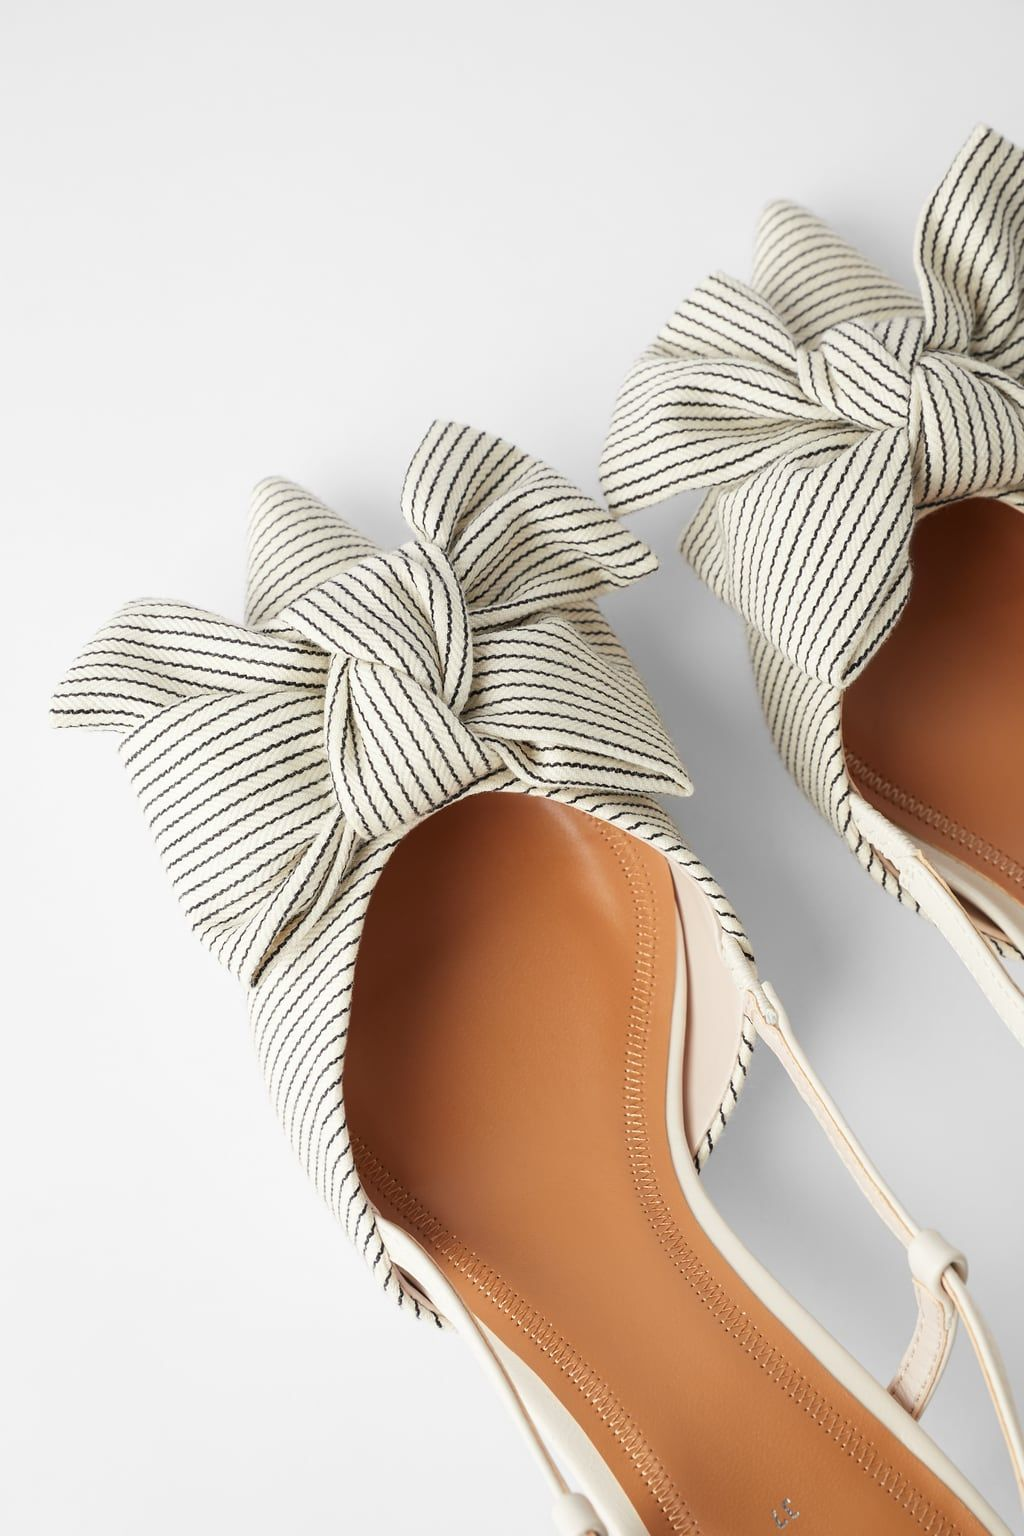 Striped Kitten Heel Shoes With Bow View All Shoes Woman Zara United States Absatz Schuhe Schuhe Frauen